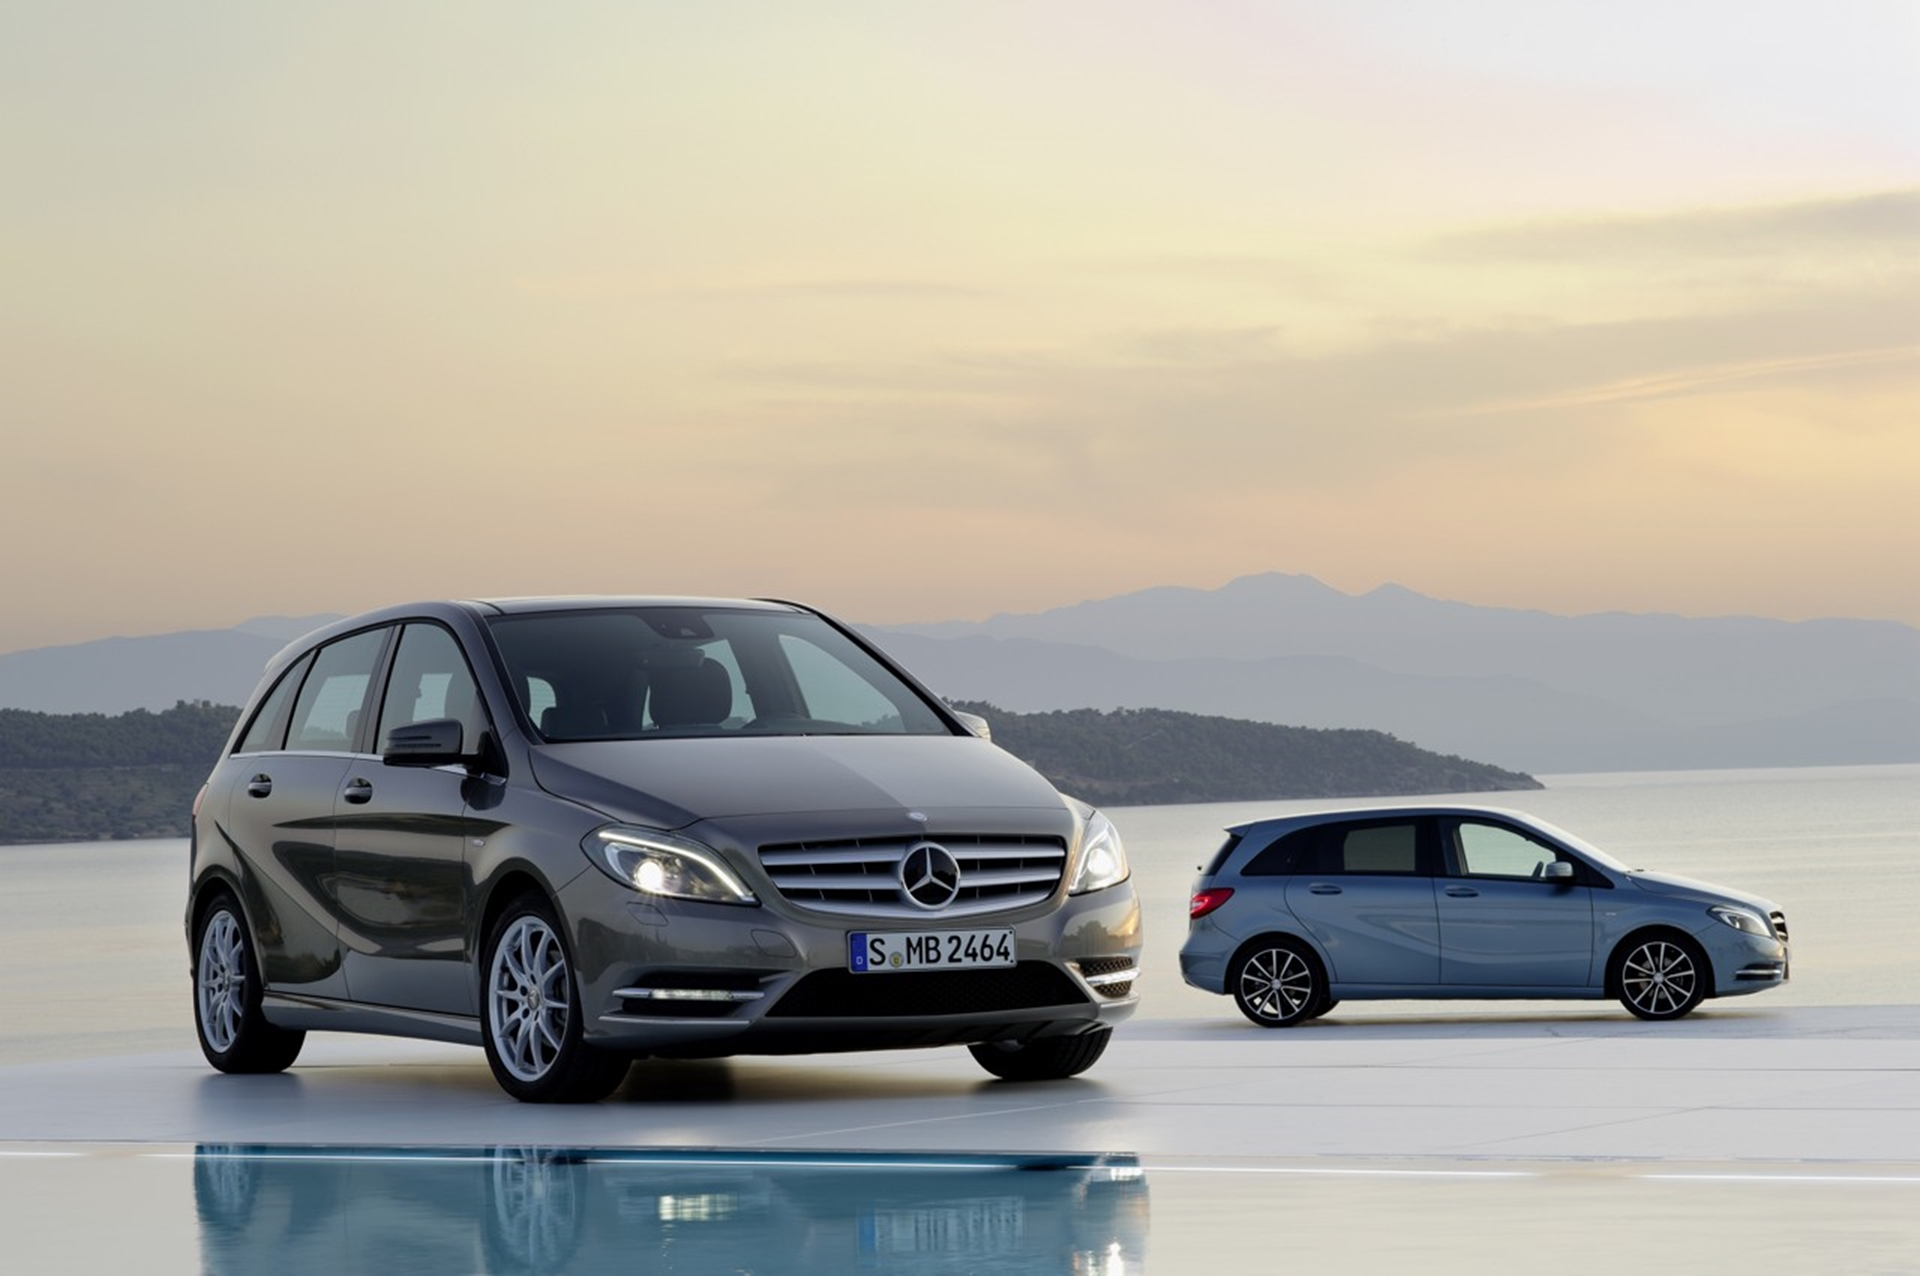 Mercedes-Benz B-Class Spesifications